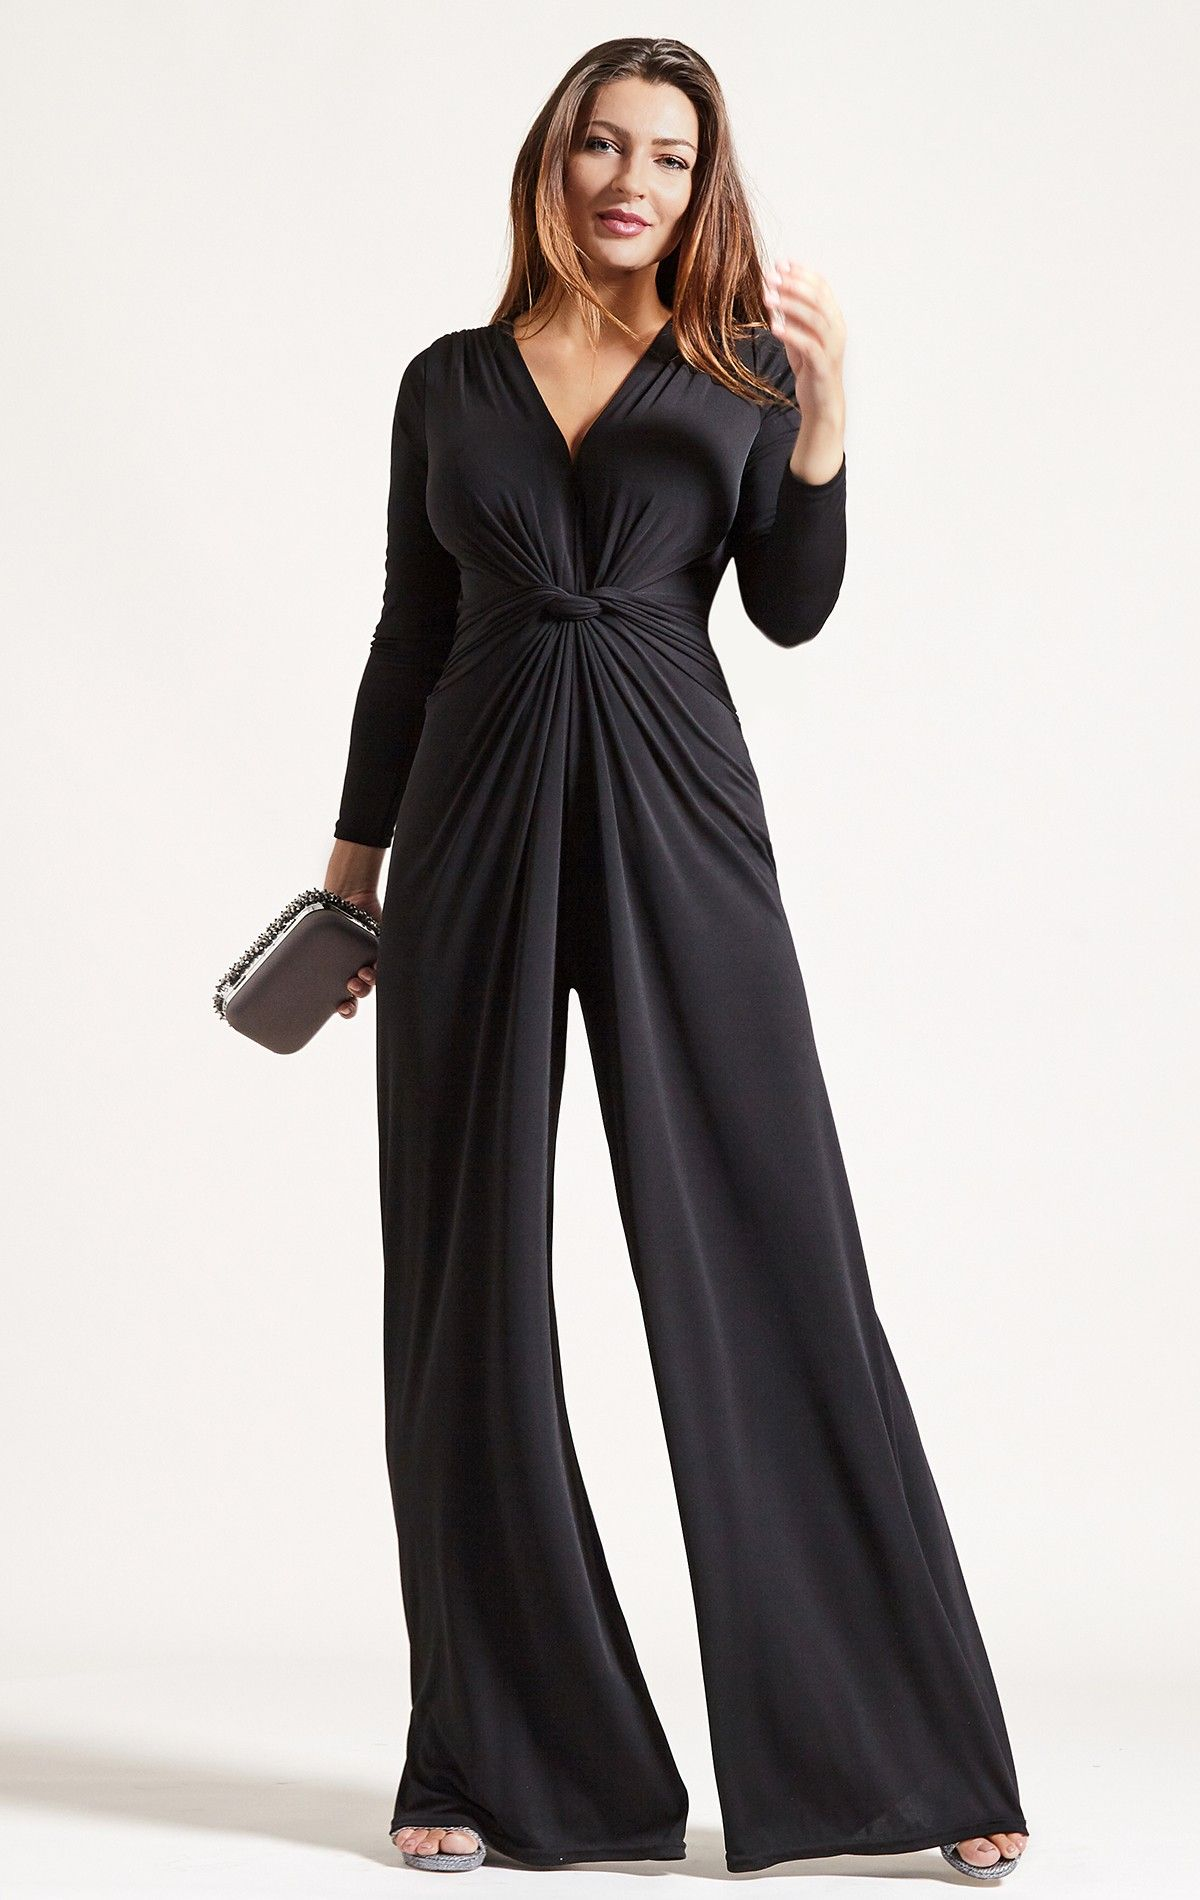 2d0cf83022a1 Palazzo Black Jumpsuit For Busty Women. Palazzo Jumpsuit in Black is your  go-to easy-to-wear cocktail party to dinner saviour. Bringing back some  playful ...